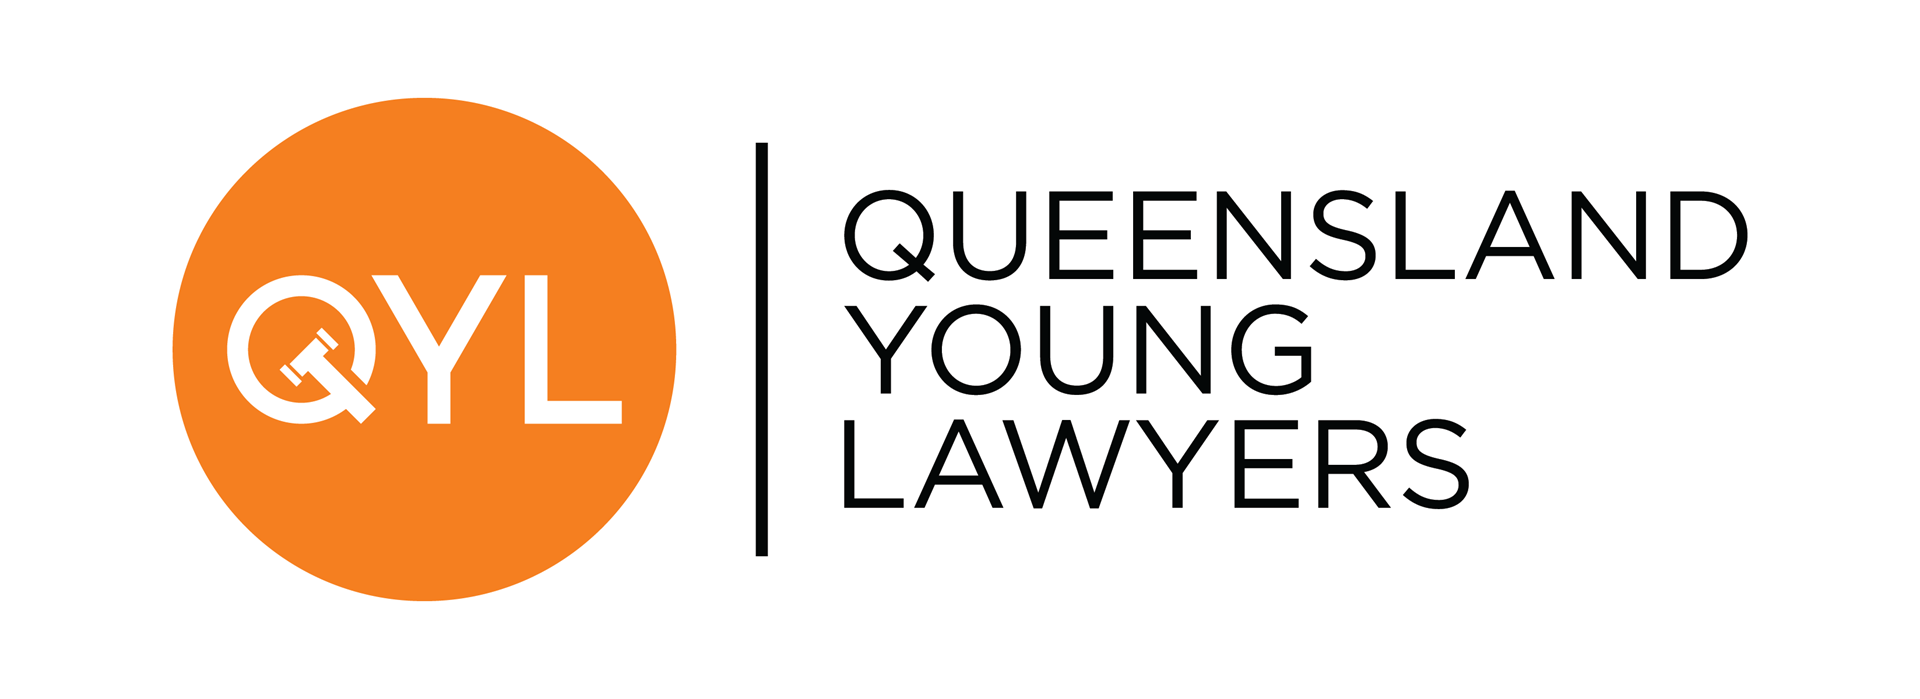 Queensland Young Lawyers